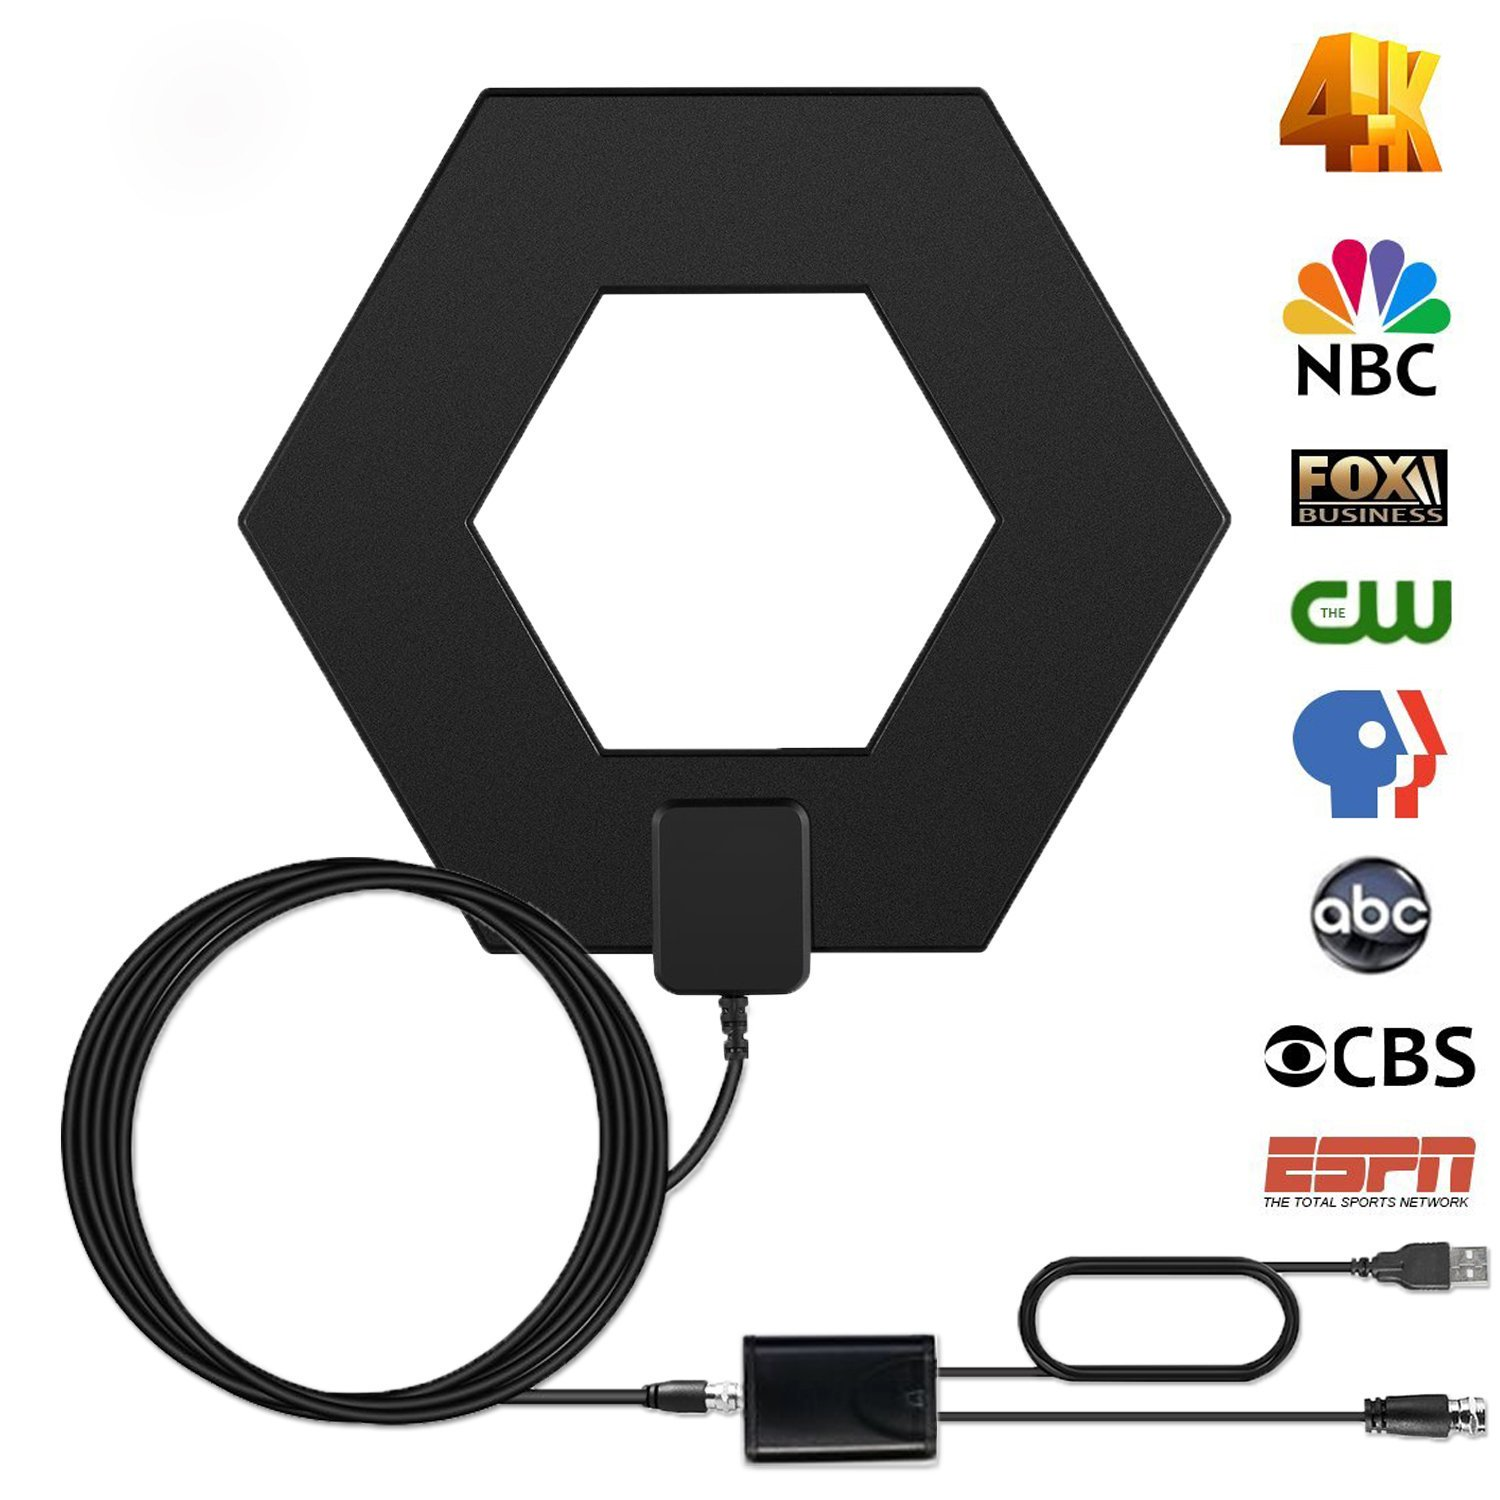 efind 80Miles Amplified Indoor TV Antenna - High Reception HDTV Antenna Long Range Digital TV Antenna for 4K Free Channels with Booster 12Ft cable by efind